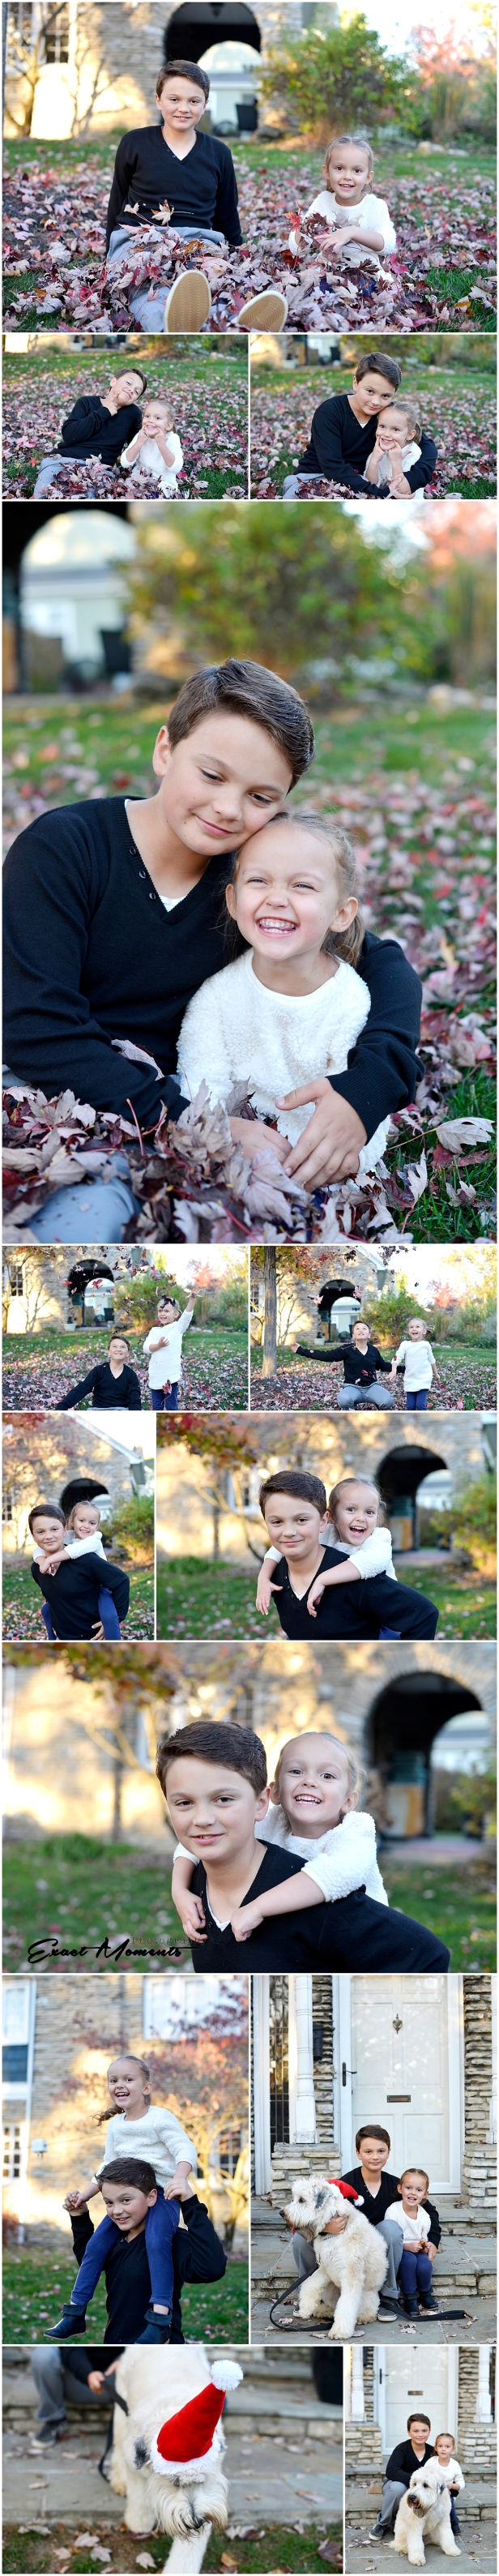 in-home-family-photography-session-ciolumbus-ohio